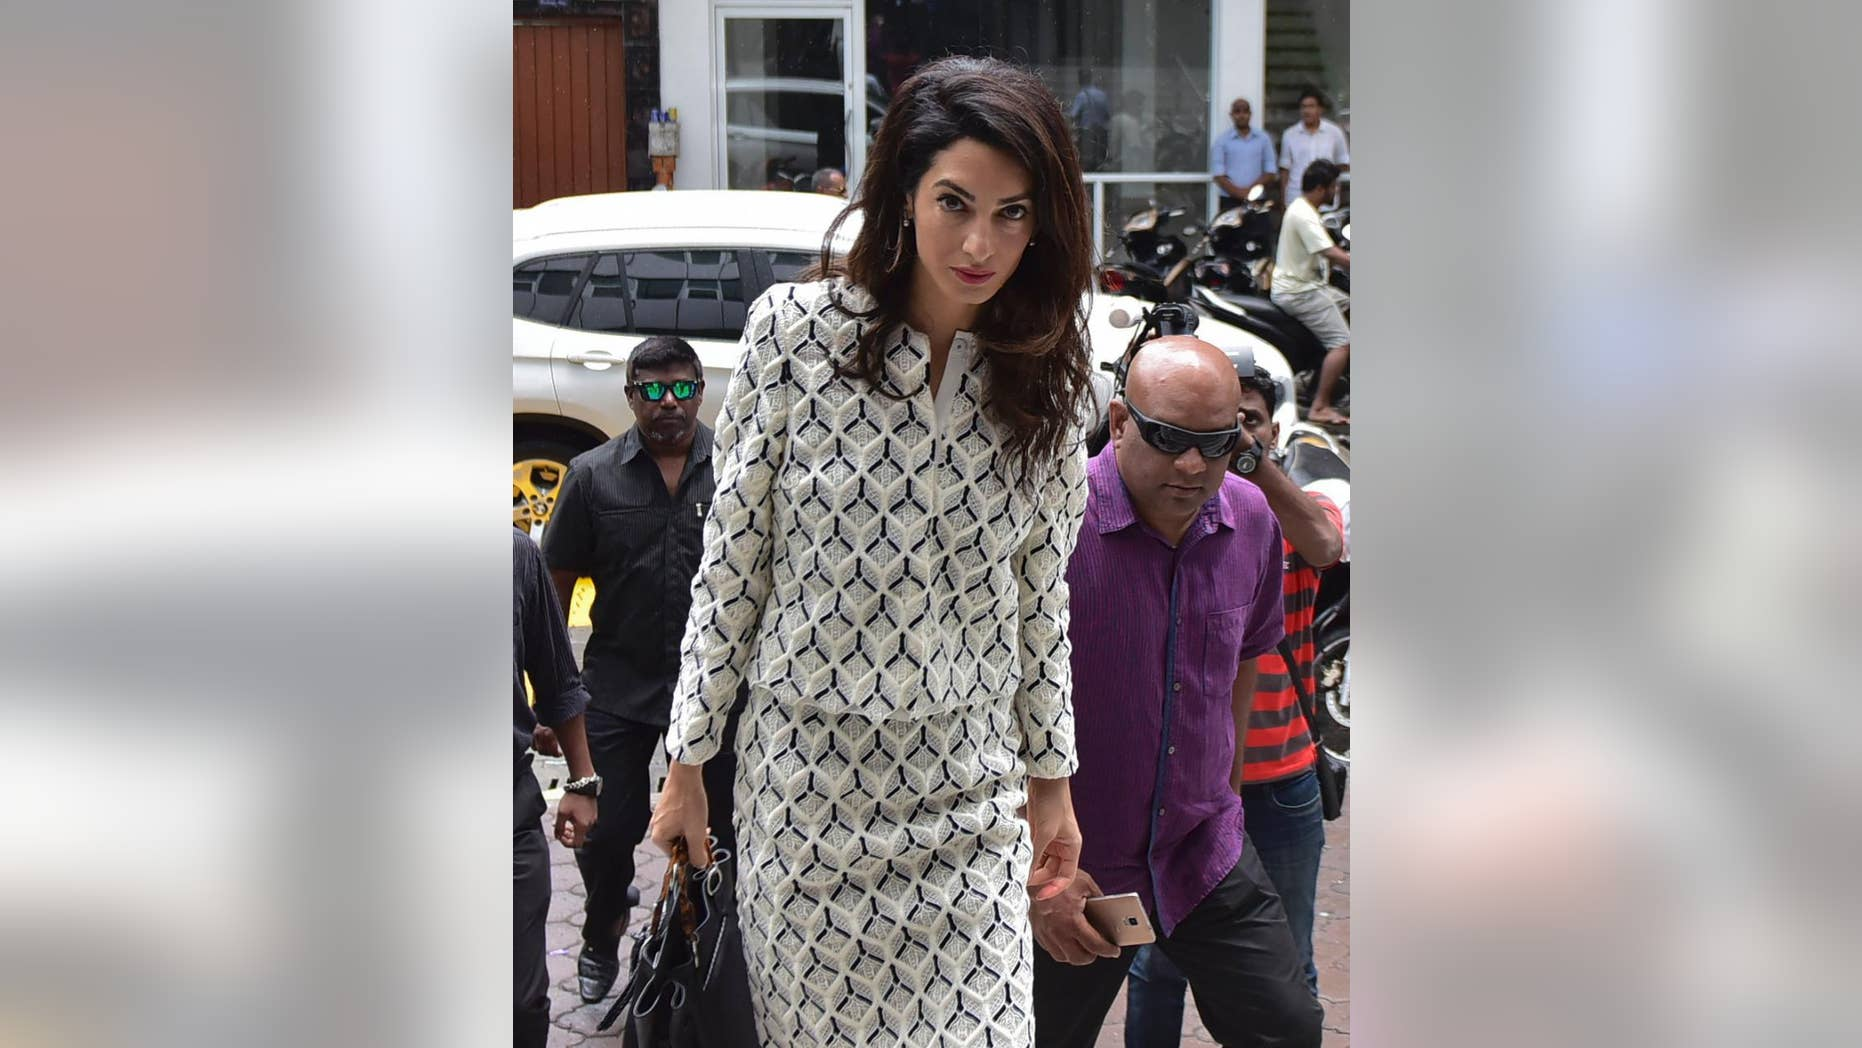 Human rights lawyer Amal Clooney arrives to meet with Attorney General Mohamed Anil at Velaanaage Attorney Generals Office in Male, Maldives, Wednesday, Sept. 9, 2015. Clooney attended a hearing Wednesday to appeal a 13-year jail sentence given to  Maldives' former president Mohamed Nasheed and met with the attorney general to discuss the case. She is part of a three-member international legal team trying to secure Nasheed's release.(AP Photo/ Mohamed Sharuhaan)